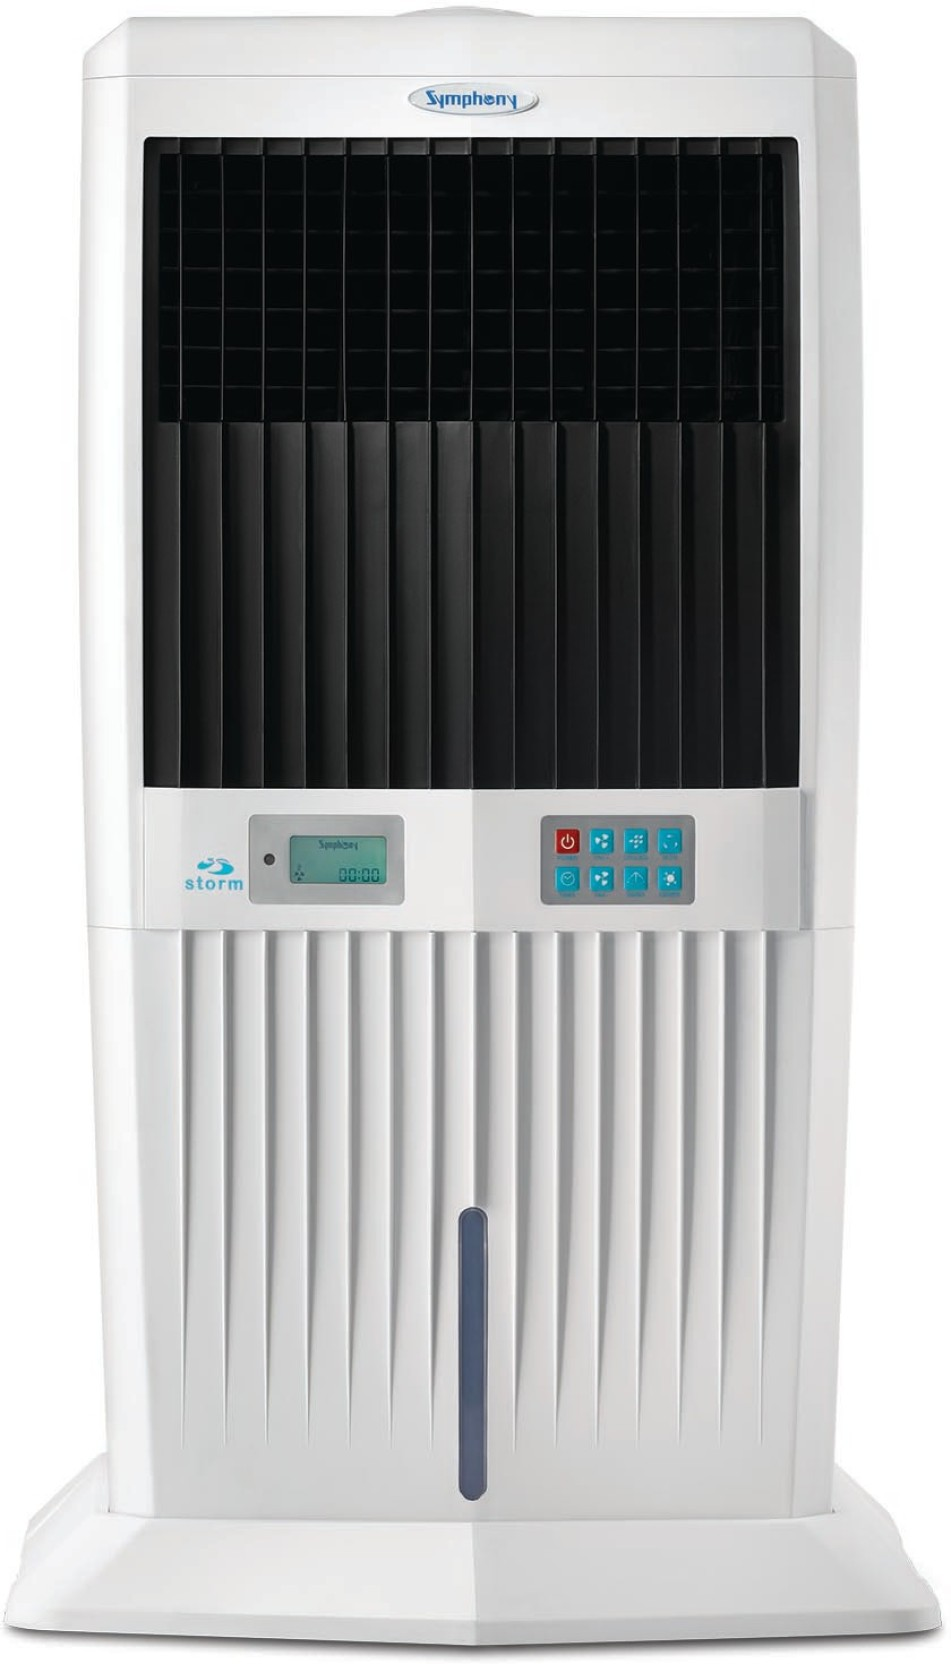 Symphony Coolers Models : Symphony storm i room air cooler price in india buy